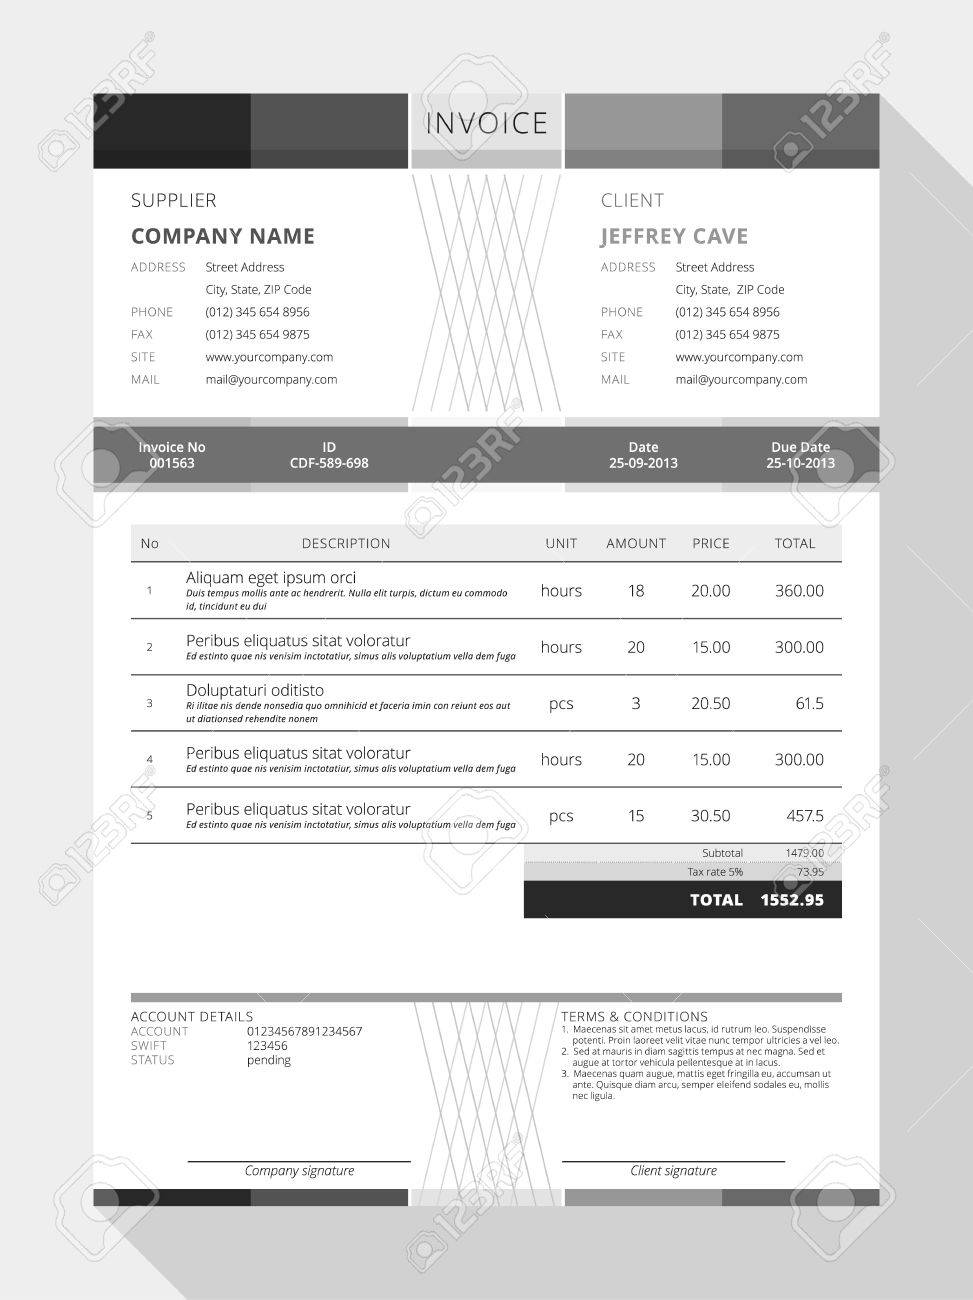 Maidofhonortoastus  Sweet Design An Invoice  Professional Graphic Design Invoice  With Excellent Vector Customizable Invoice Form Template Design Vector   Design An Invoice With Charming Web Receipts Folder Also Sale Of Car Receipt In Addition Define Cash Receipt And Cash Receipt Template Free As Well As Neat Receipts Mobile Scanner Additionally Email Confirmation Receipt From Happytomco With Maidofhonortoastus  Excellent Design An Invoice  Professional Graphic Design Invoice  With Charming Vector Customizable Invoice Form Template Design Vector   Design An Invoice And Sweet Web Receipts Folder Also Sale Of Car Receipt In Addition Define Cash Receipt From Happytomco